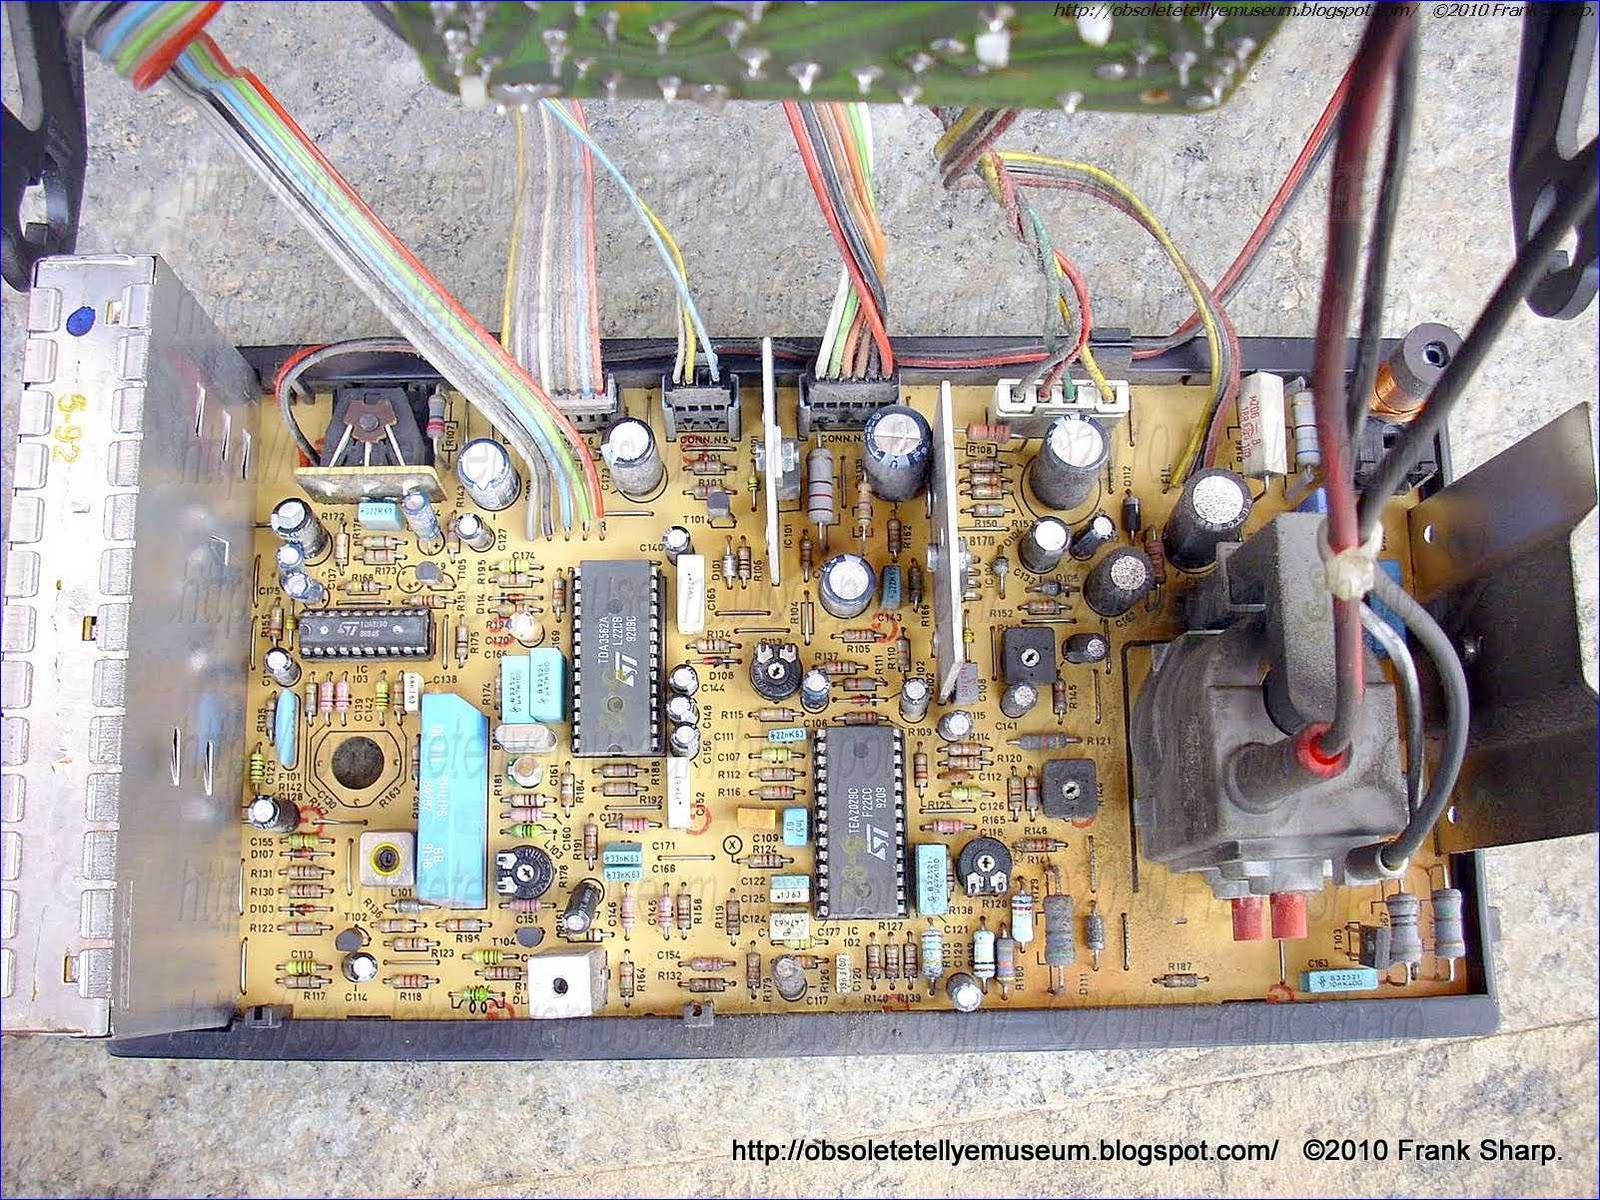 Obsolete Technology Tellye Mivar 14v2e Chassis 3608 1 Internal View Hobby Electronics Circuits Input Trigger Synchronized Monostable Amplifier With Fly Back Generator Such As The Tda8170 Secondary Switch Mode Power Regulation Smps Output Synchronize A Primary Ic